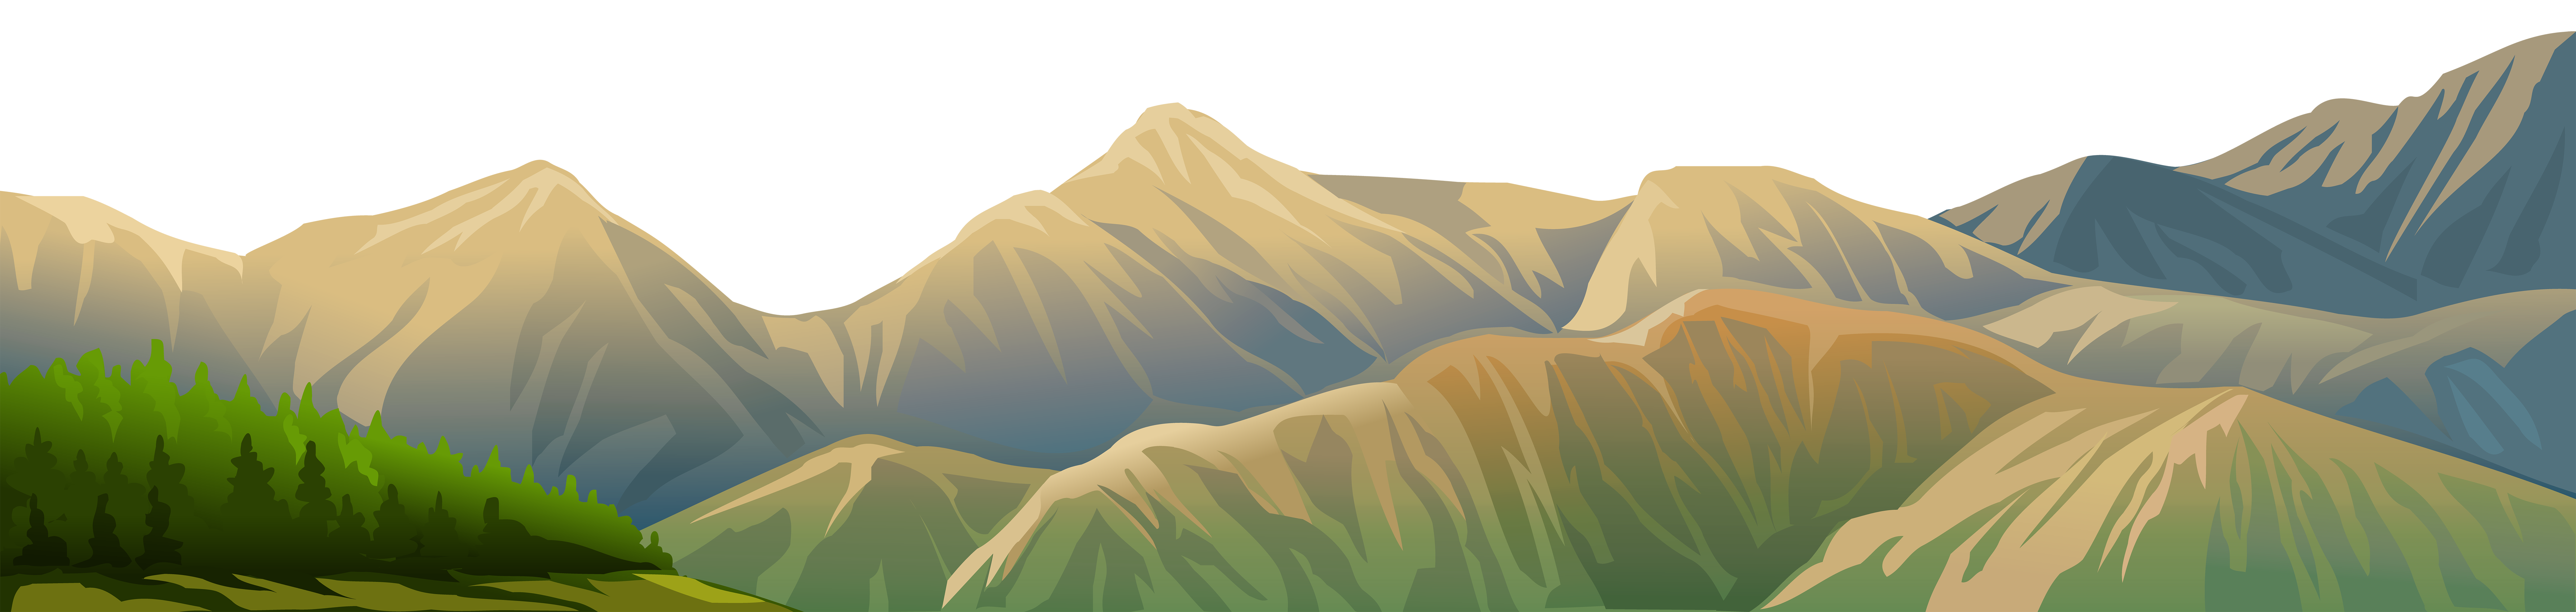 Clipart mountains terrain. Cliffs ground transparent png